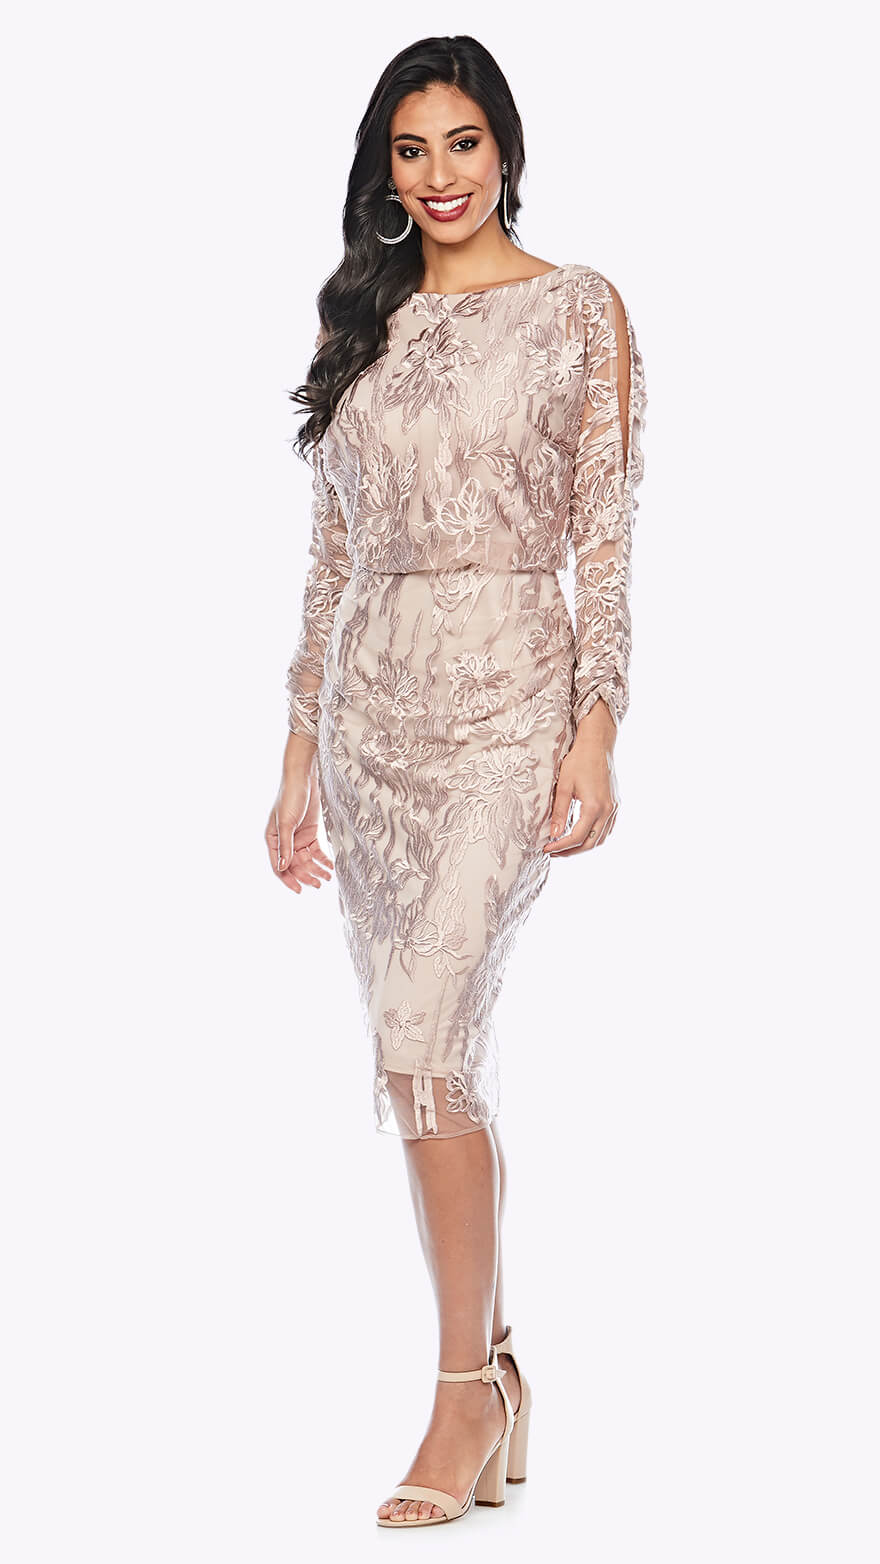 Z0217 Blouson style gown with open full-length sleeve in graphic lace pattern